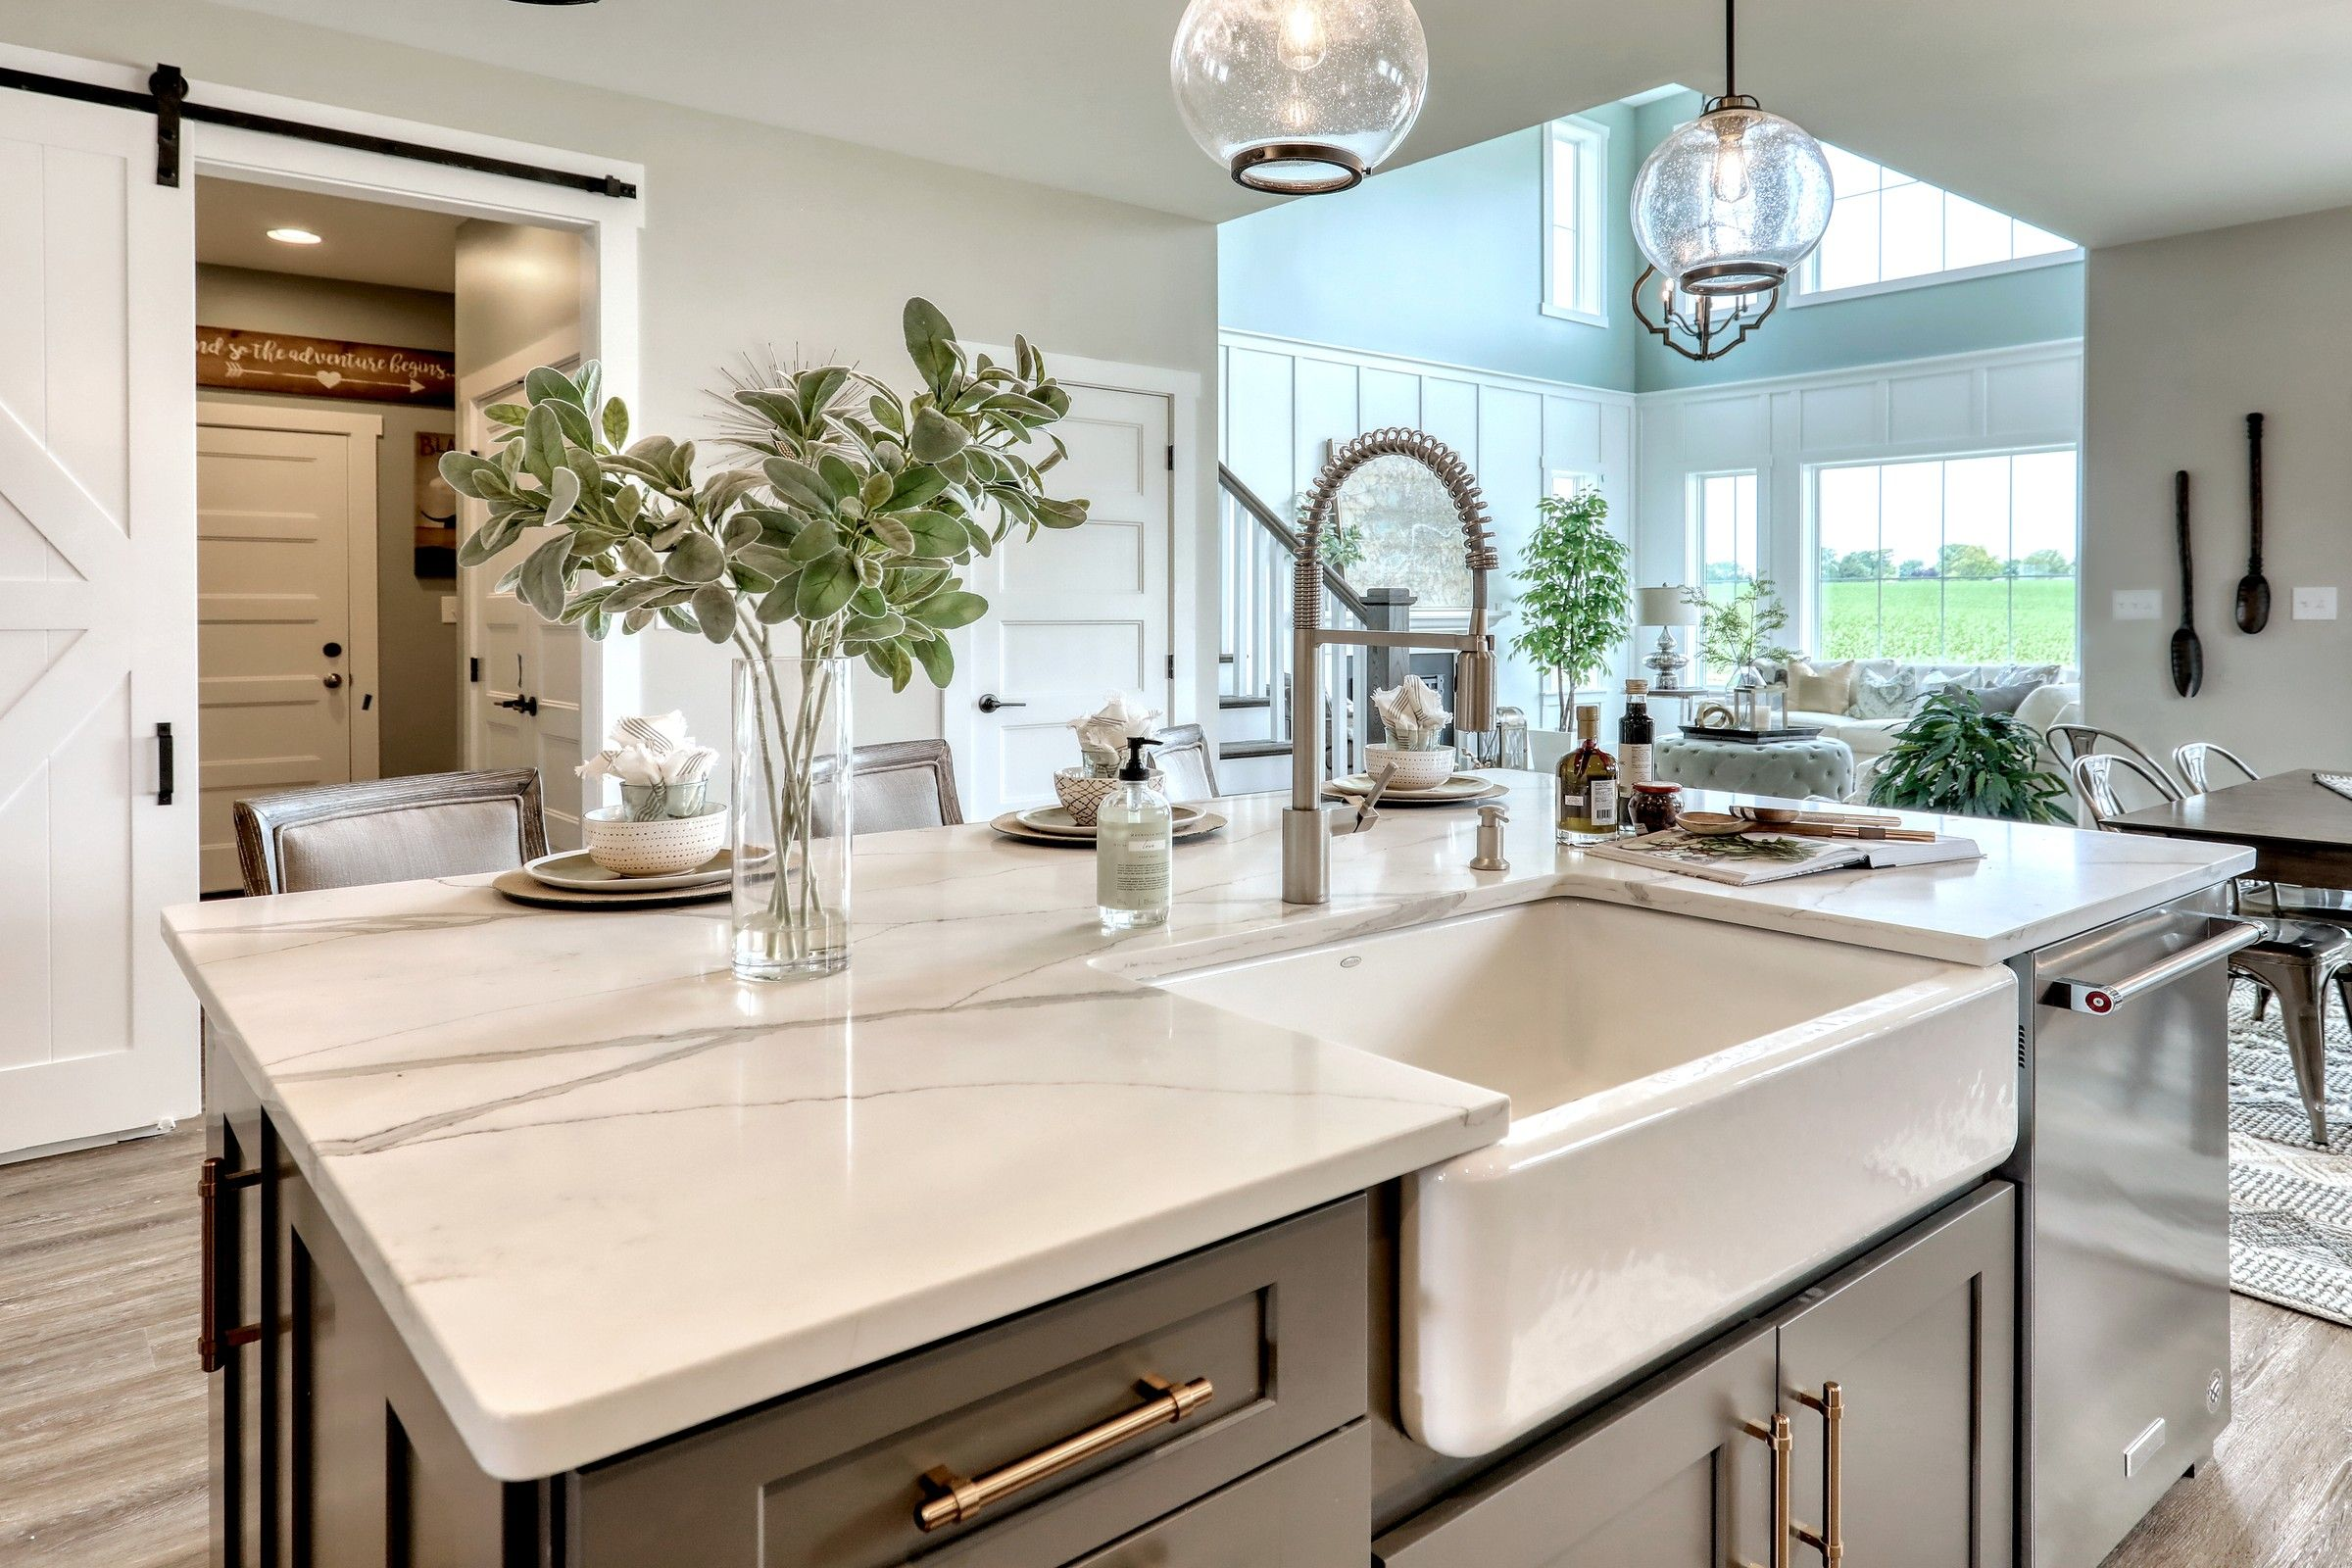 Kitchen featured in the Manchester Heritage By Keystone Custom Homes in Washington, MD